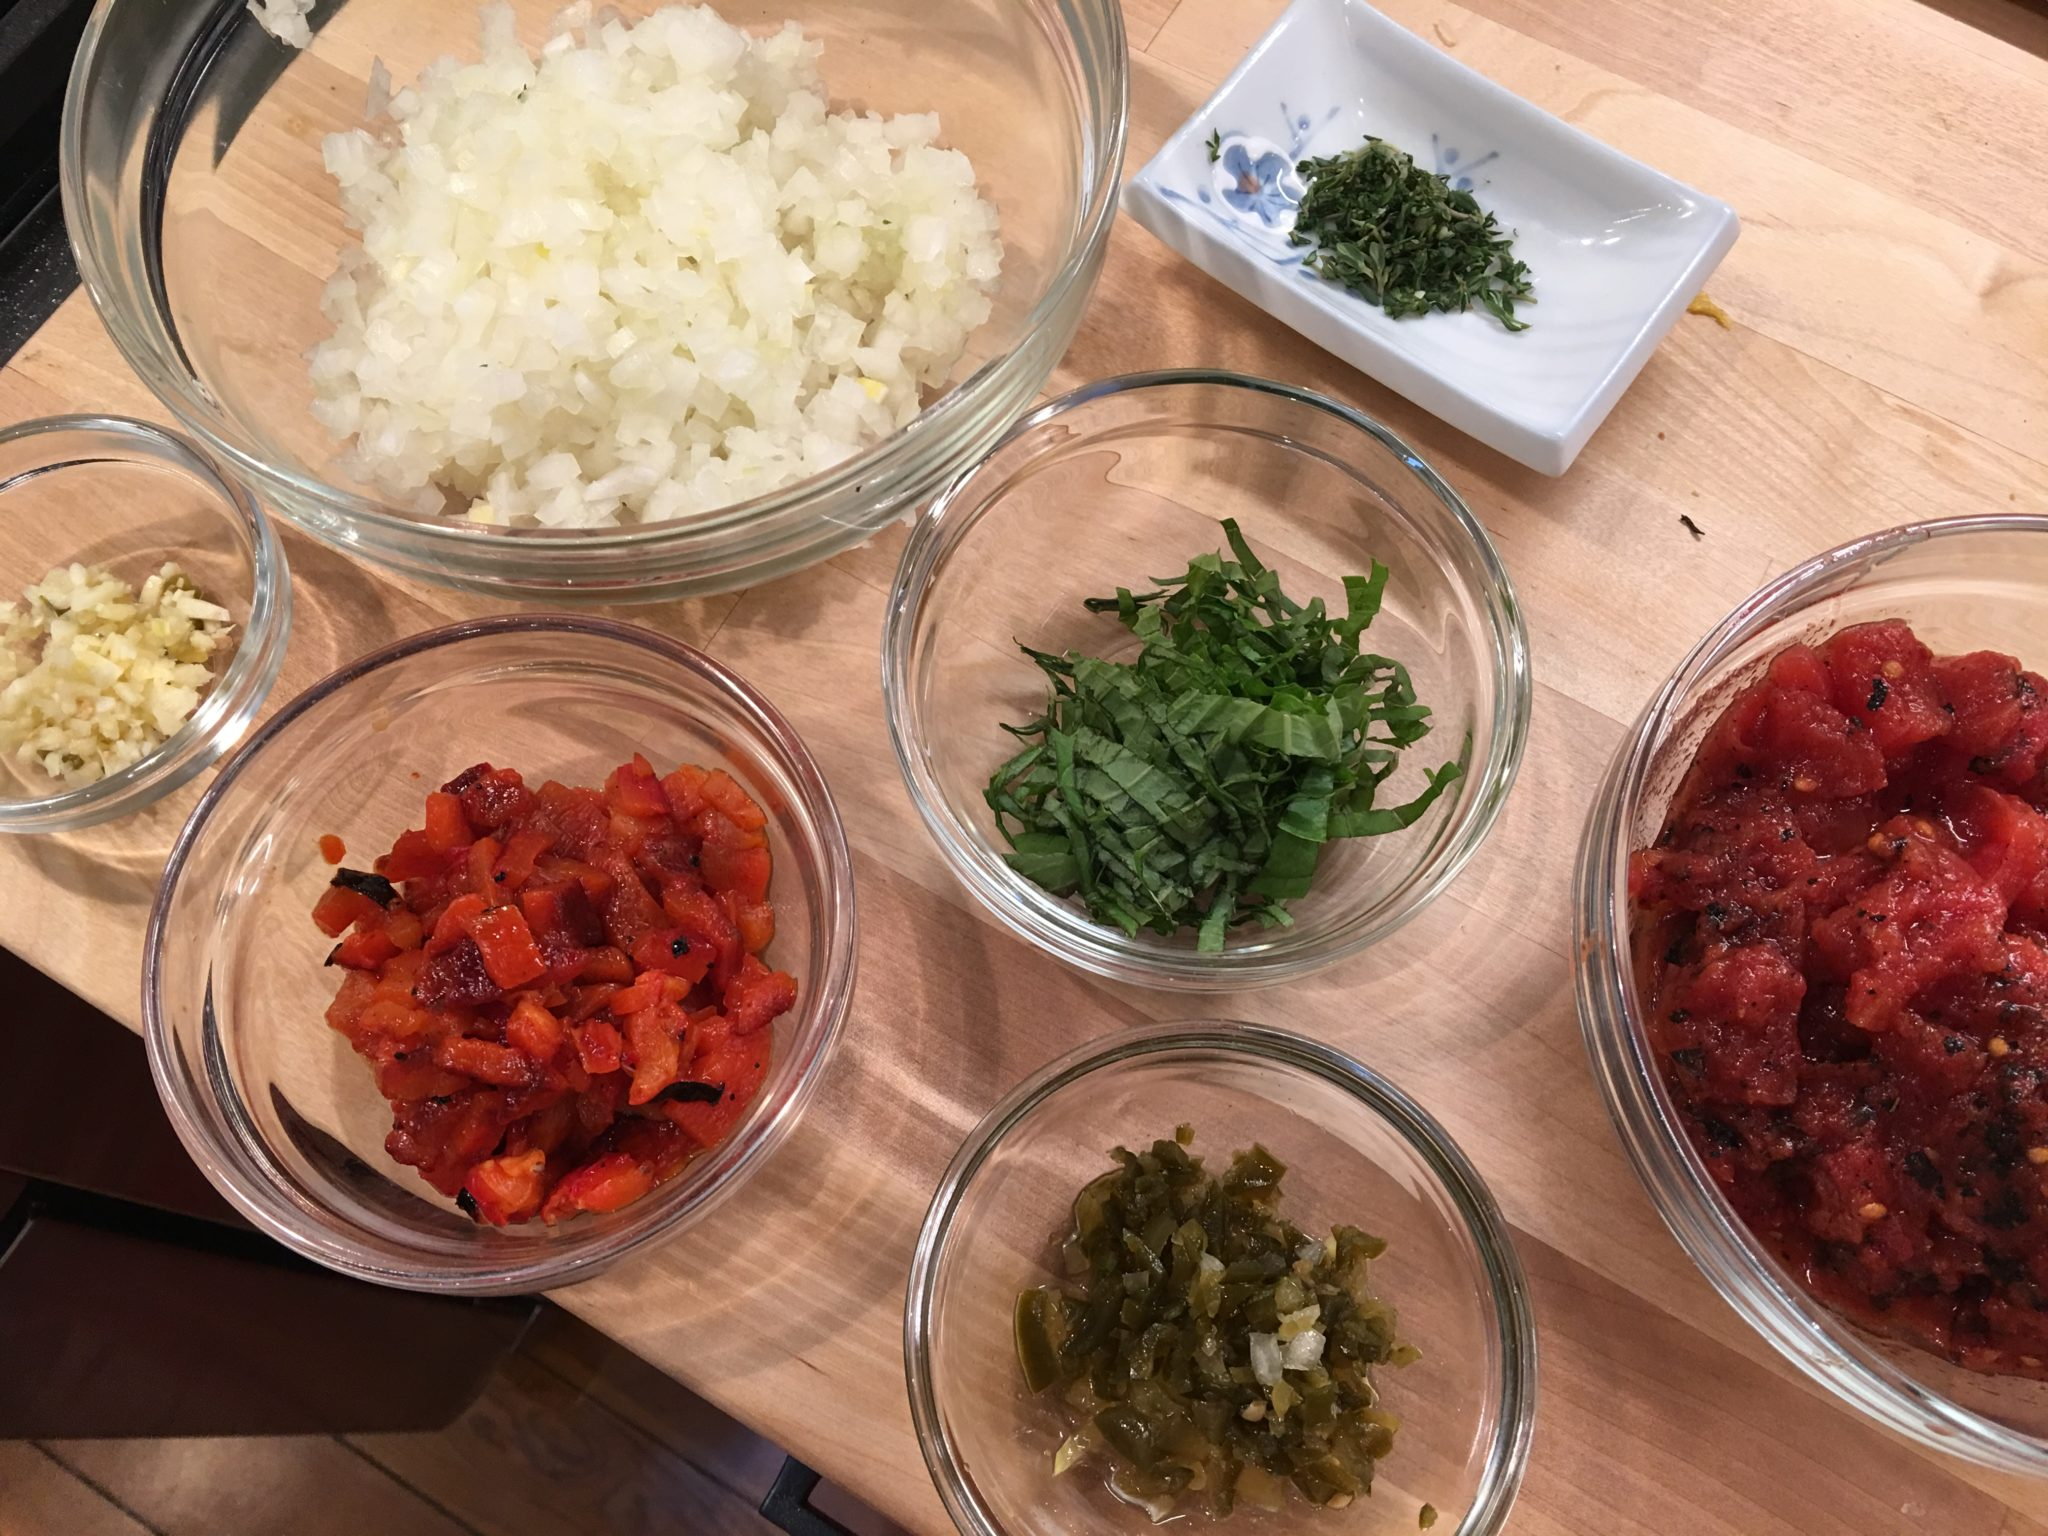 Mise en place for Spicy Pepper Relish